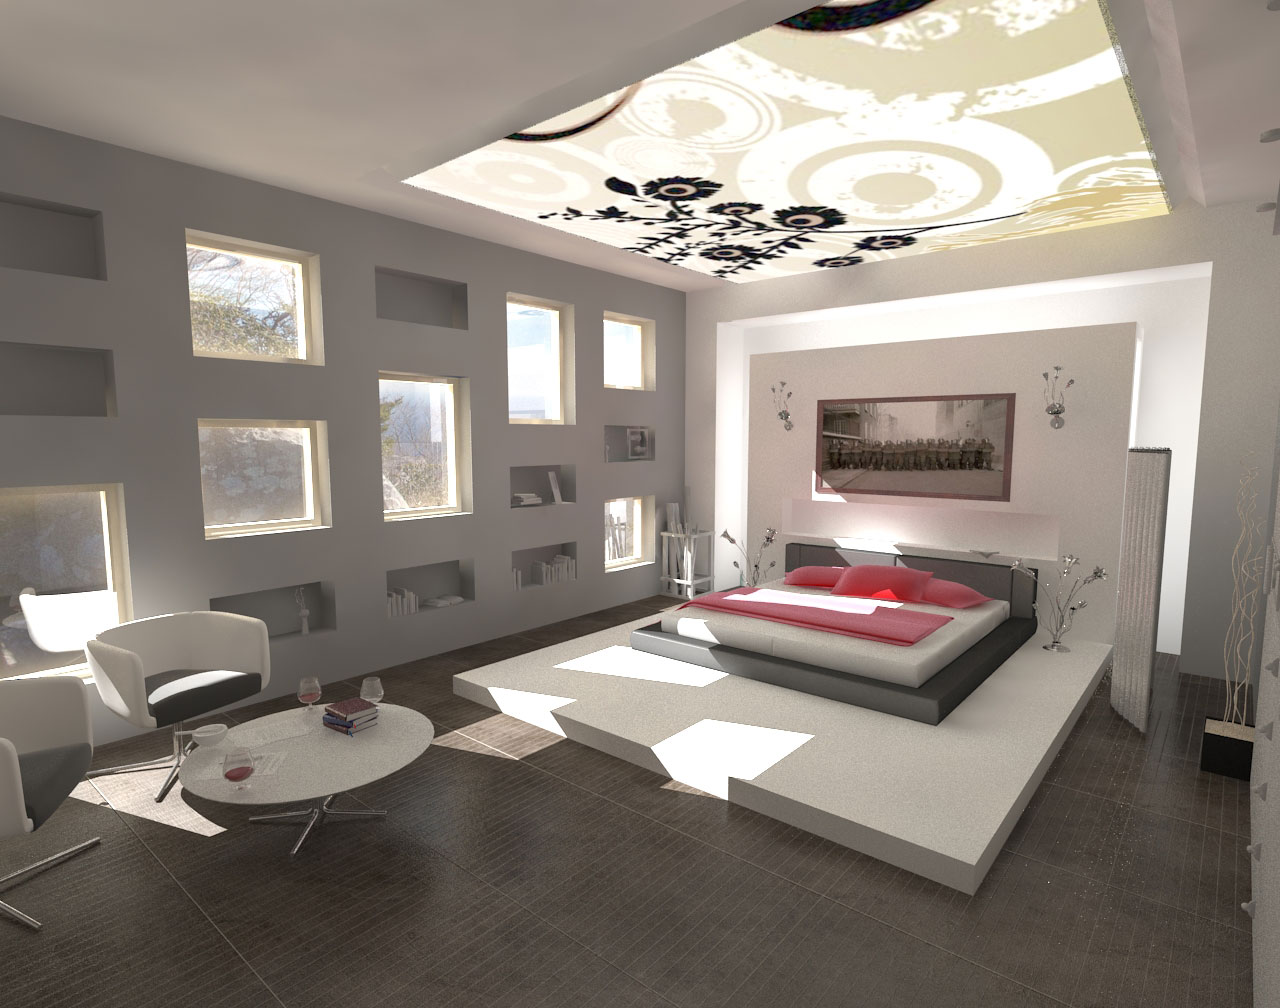 Decorations minimalist design modern bedroom interior for Interior design gallery